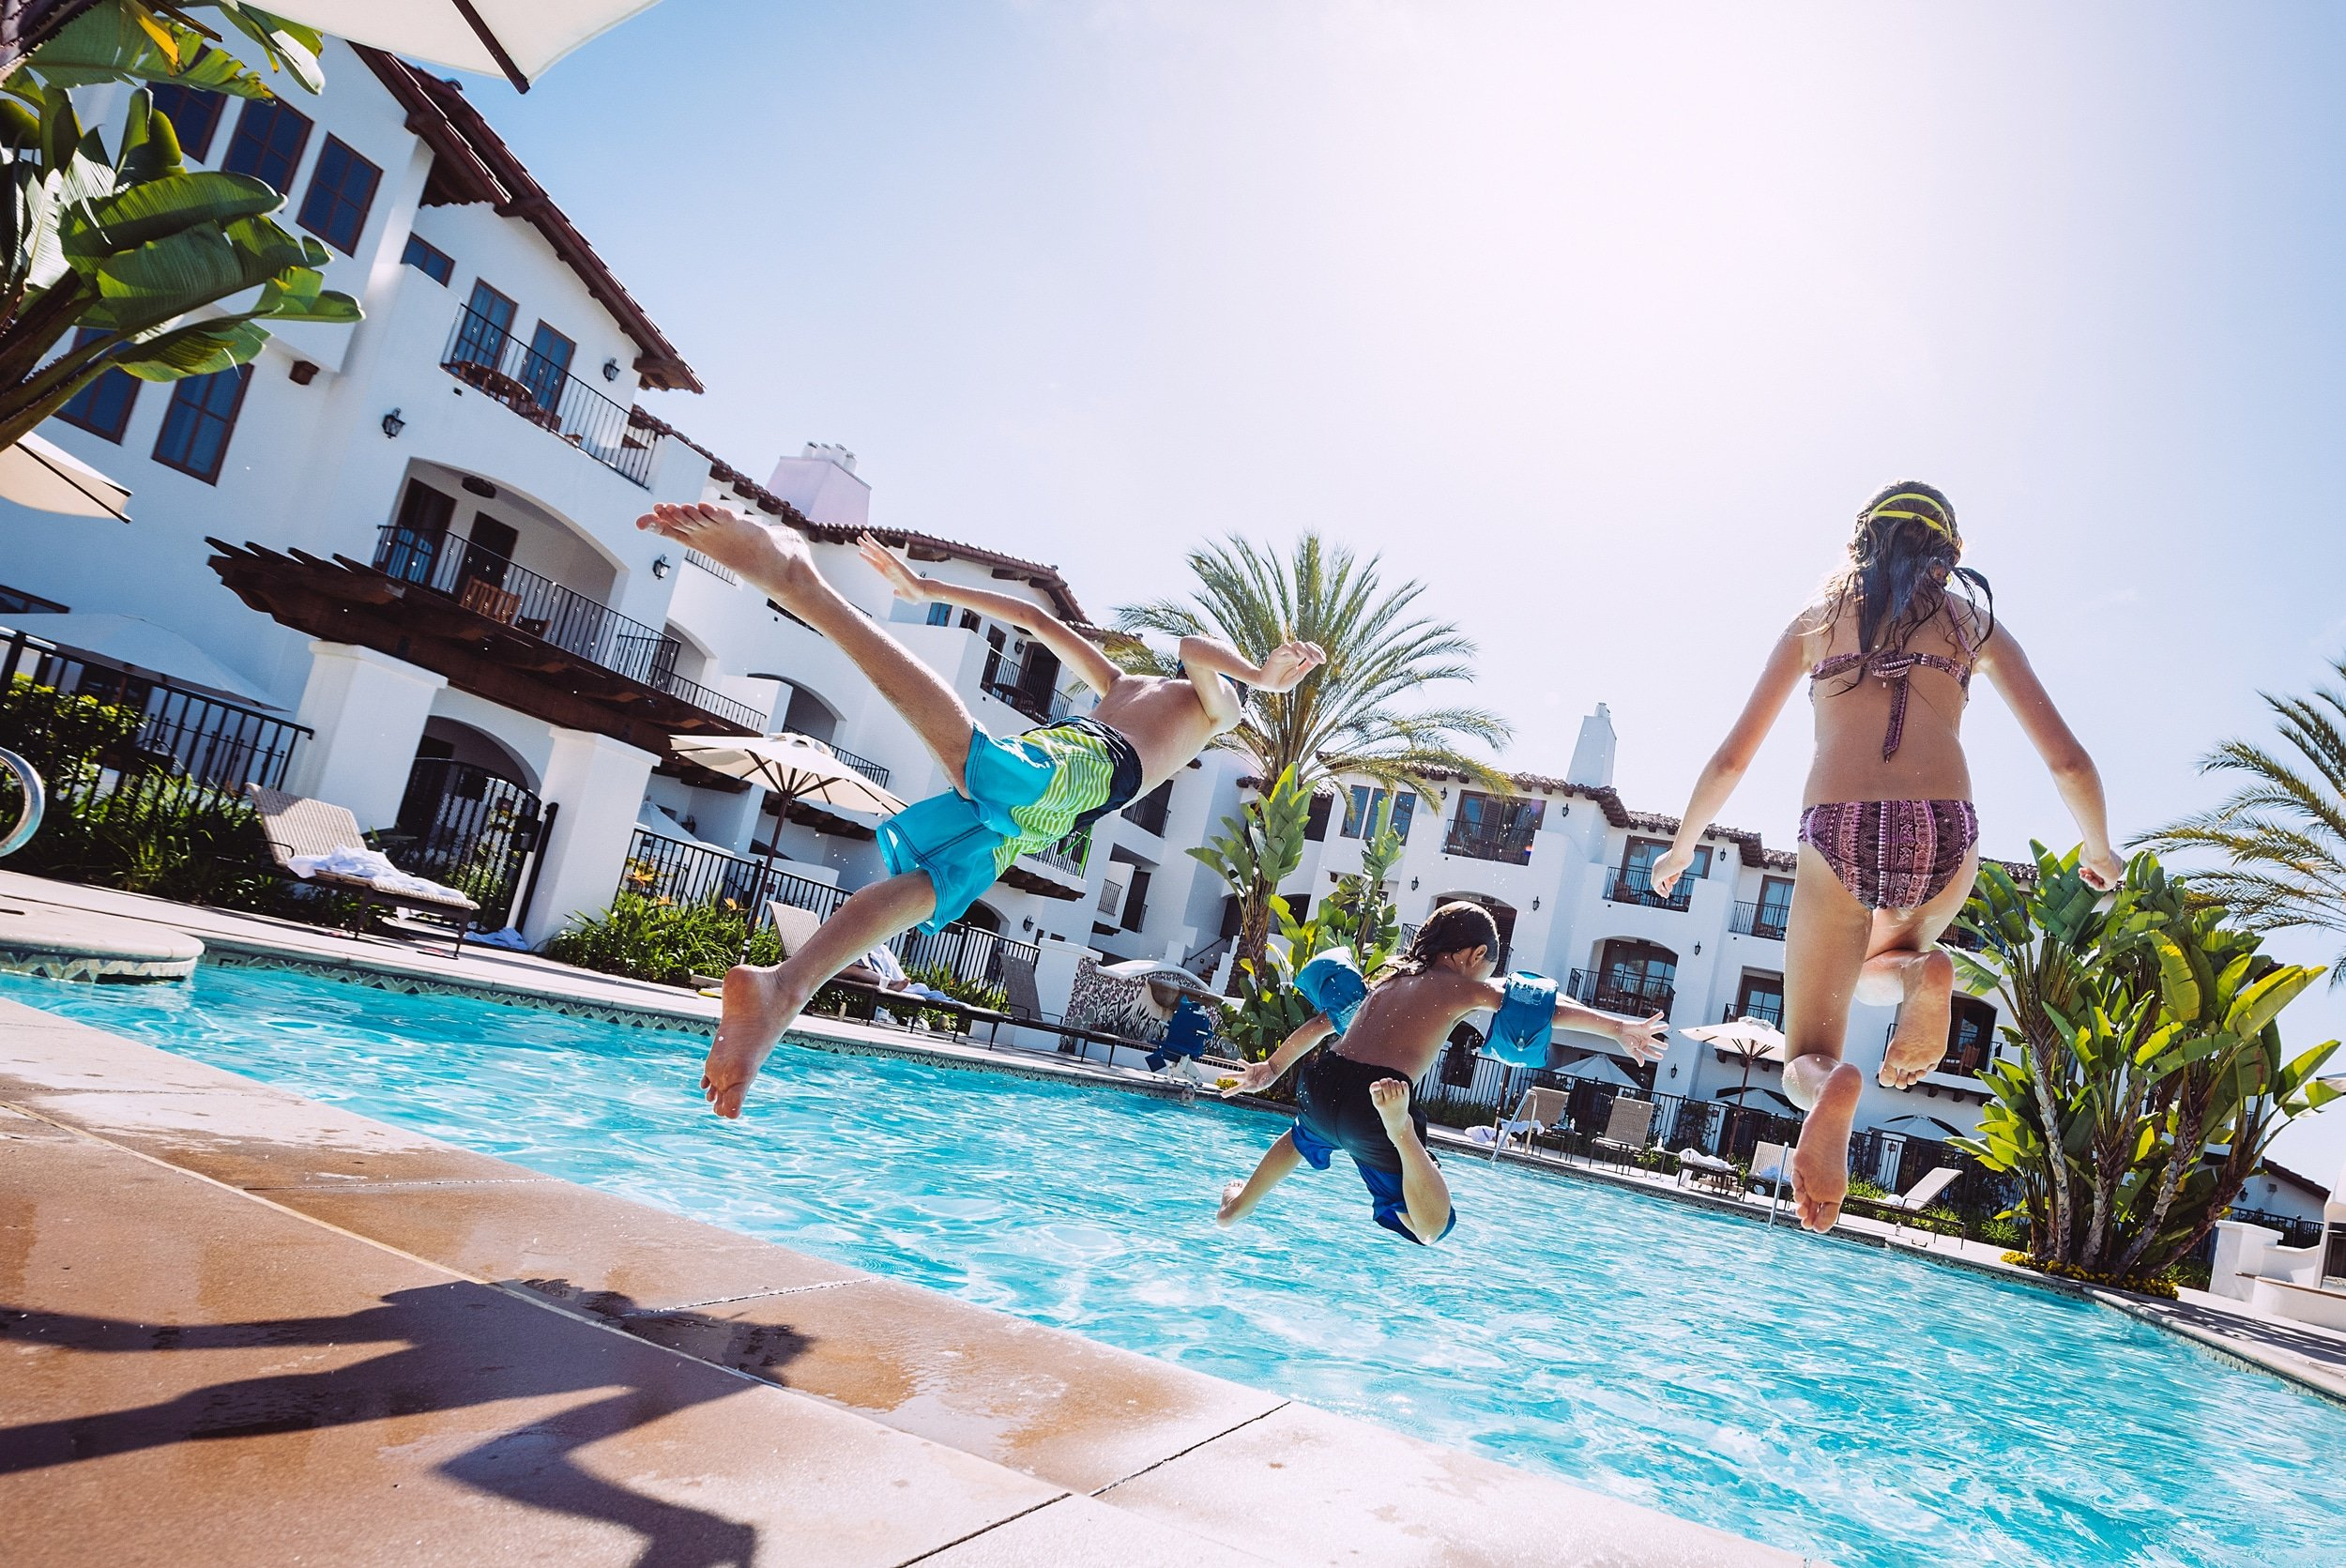 Kids jump into the Villa Pool on a sunny day at Omni La Costa.